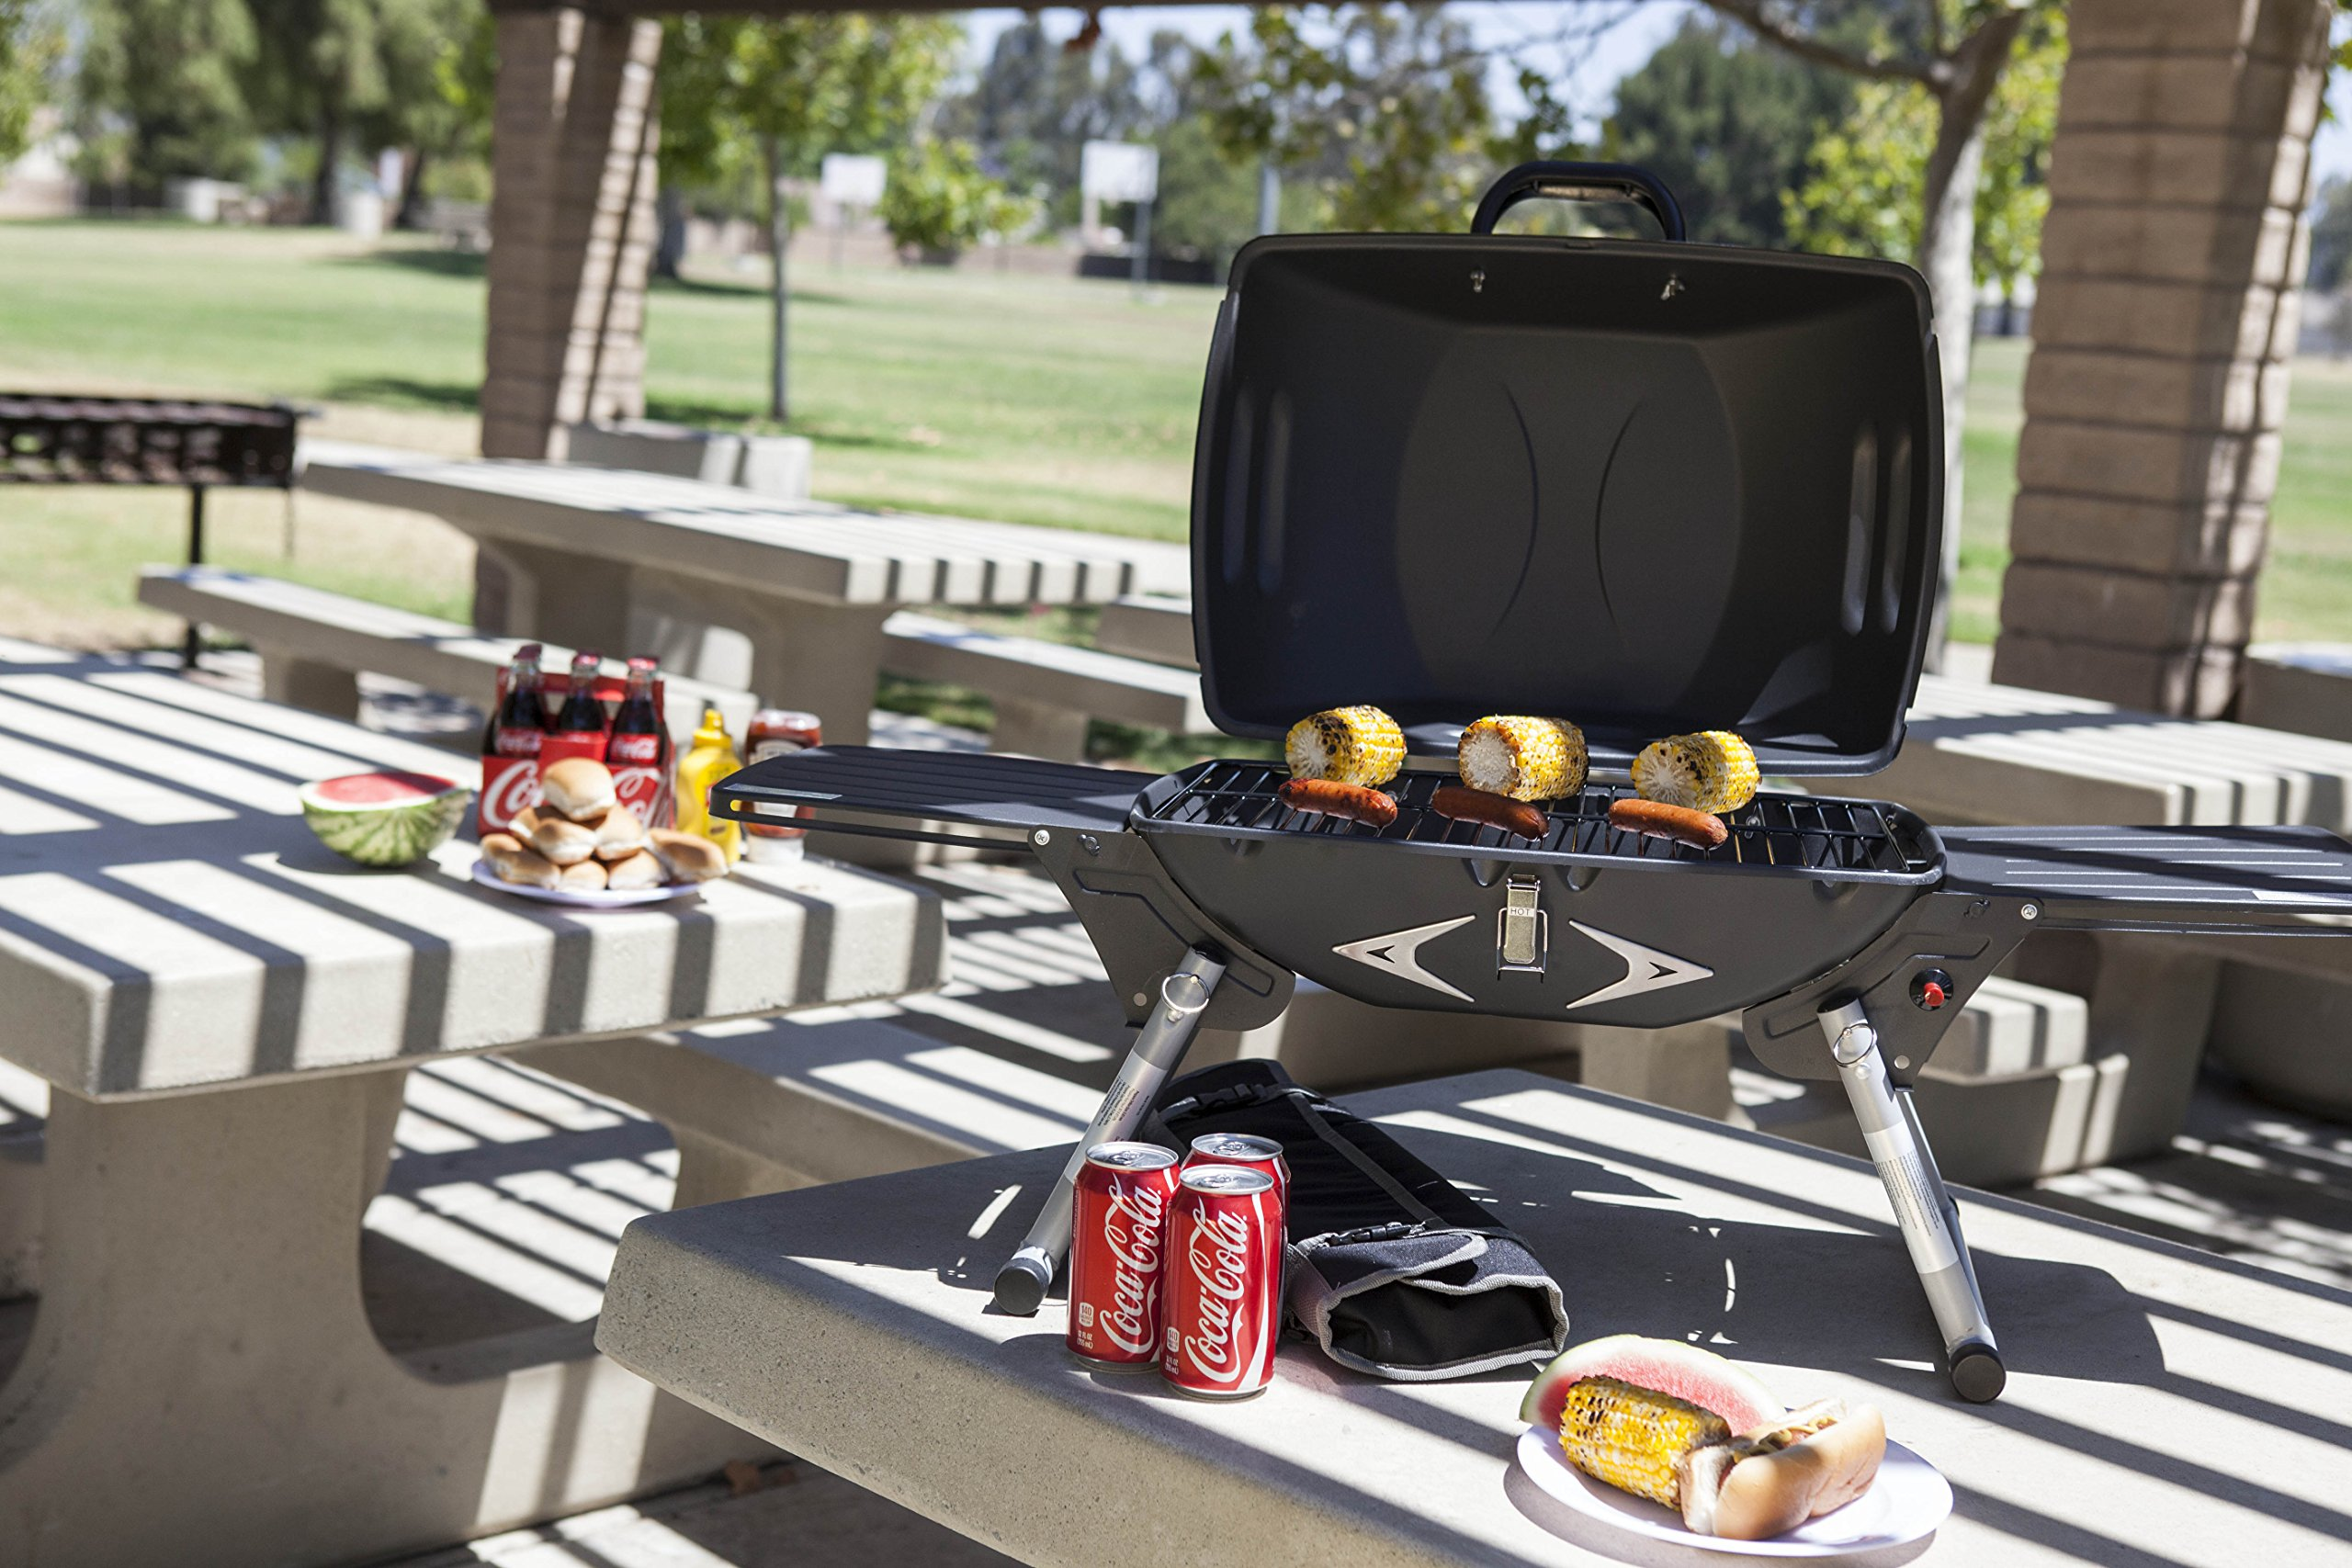 Picnic Time Portagrillo Portable Propane BBQ Grill by ONIVA - a Picnic Time brand (Image #5)